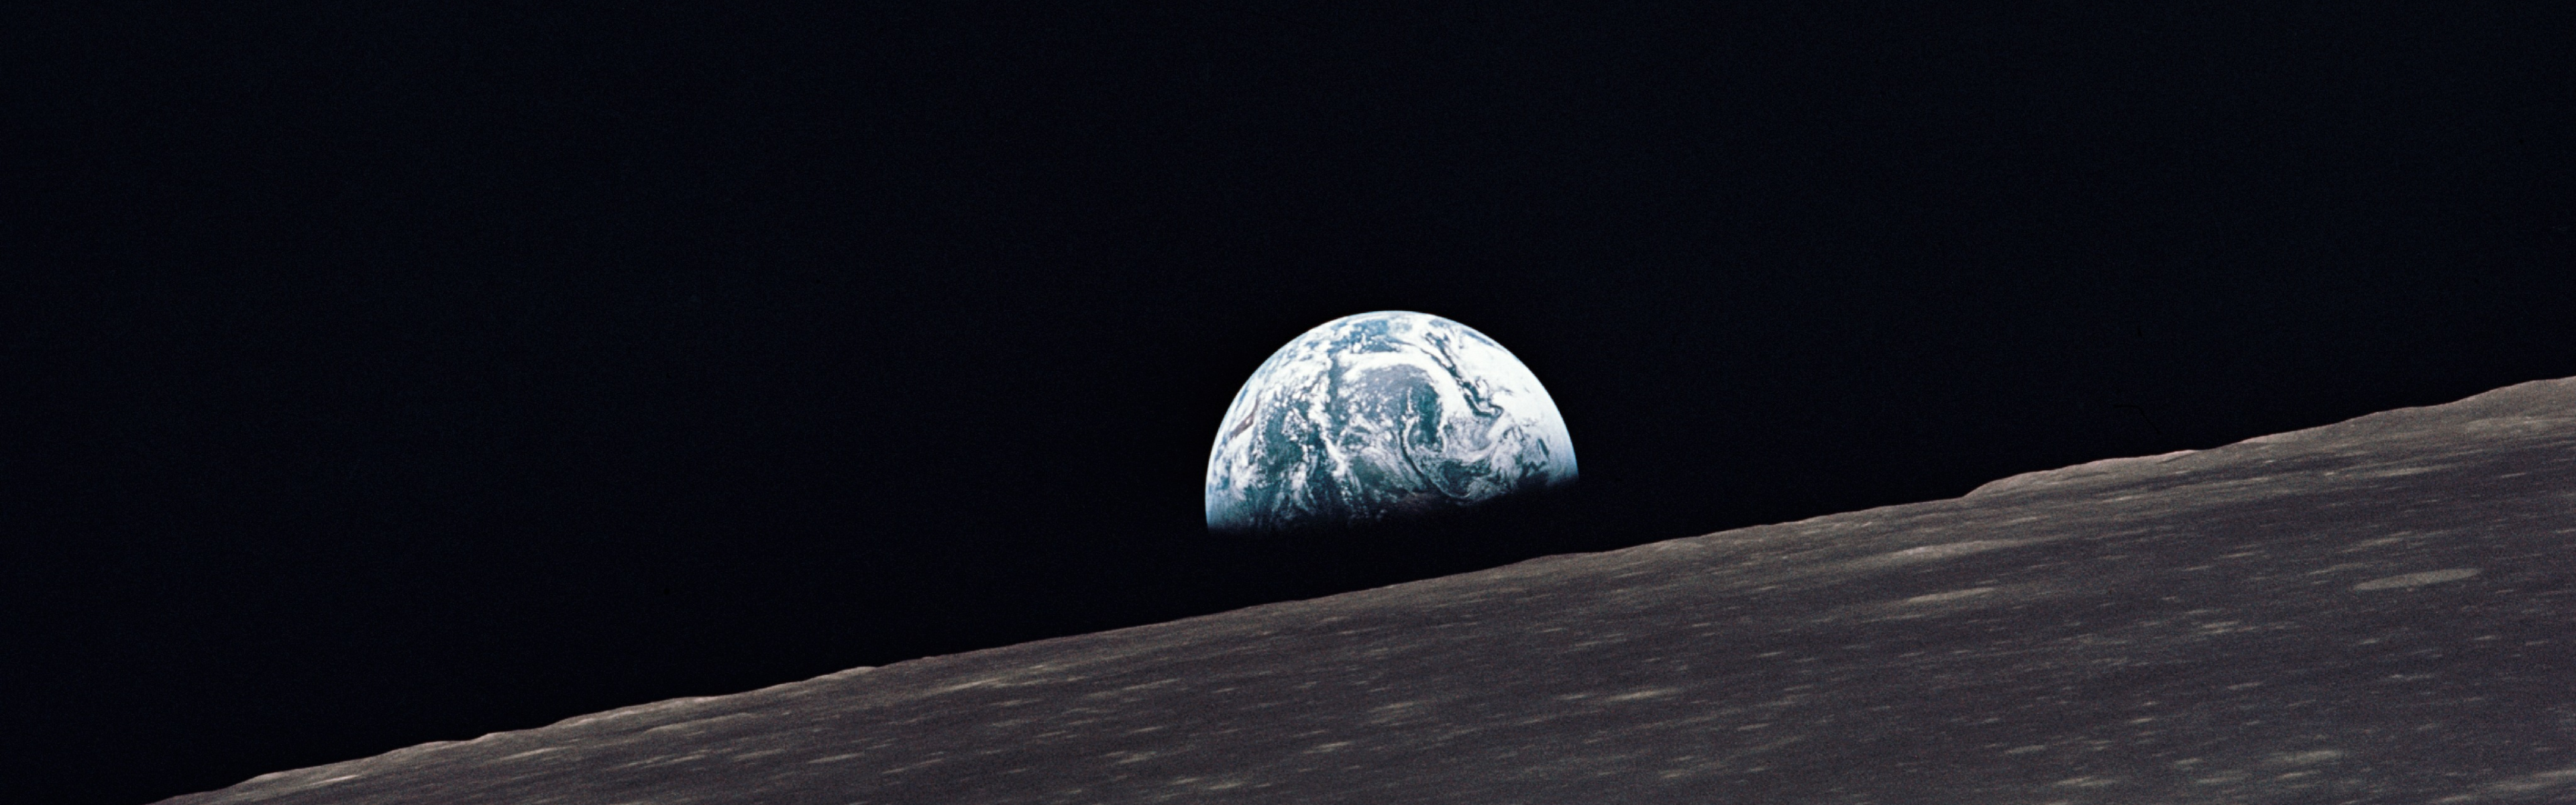 Earthrise Dual Monitor Wallpapers Du 979847 Png Images Pngio